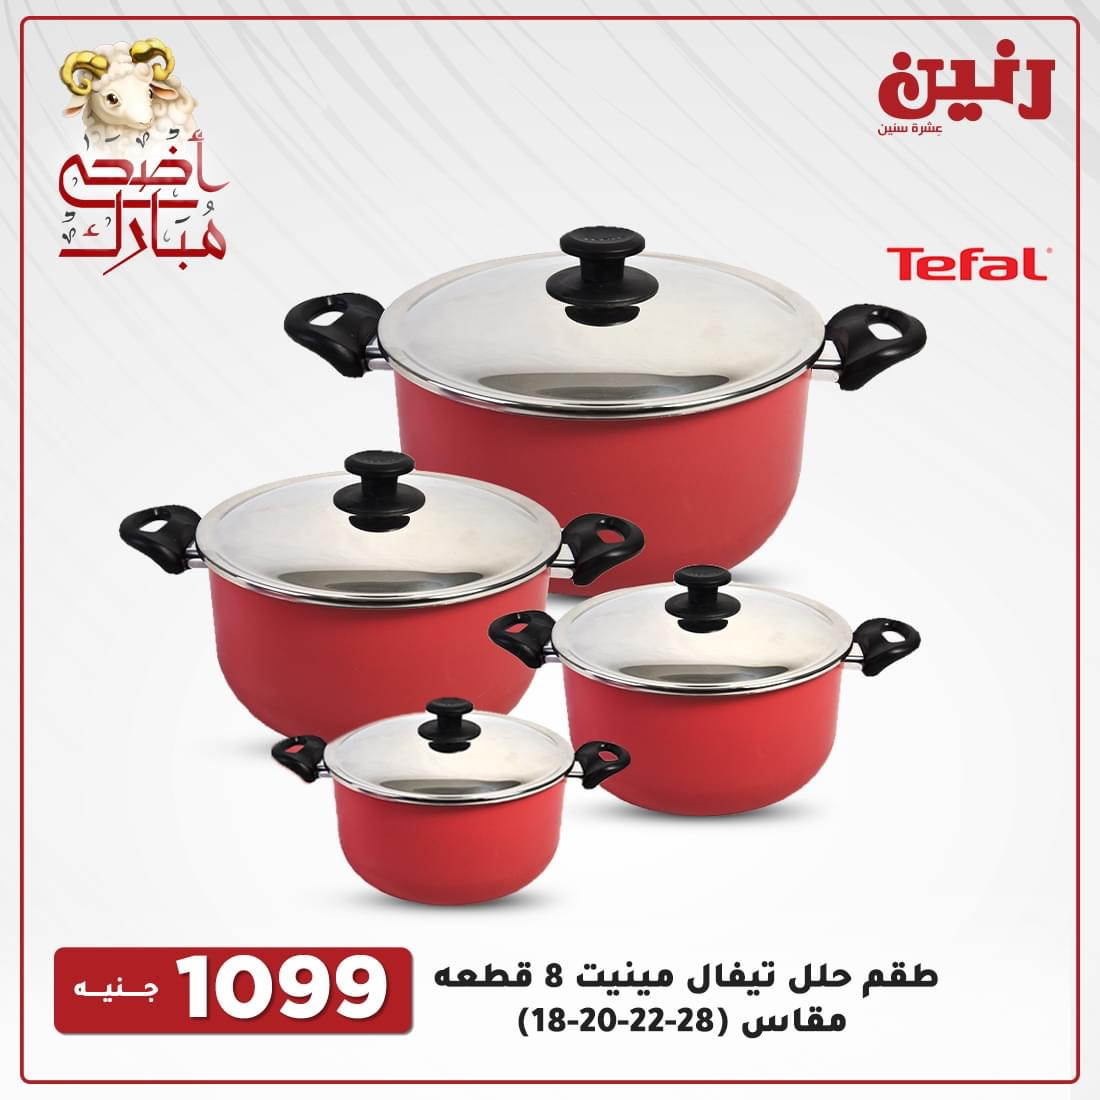 Raneen offers today for appliances and household appliances from July 22 to 24, 2021 28